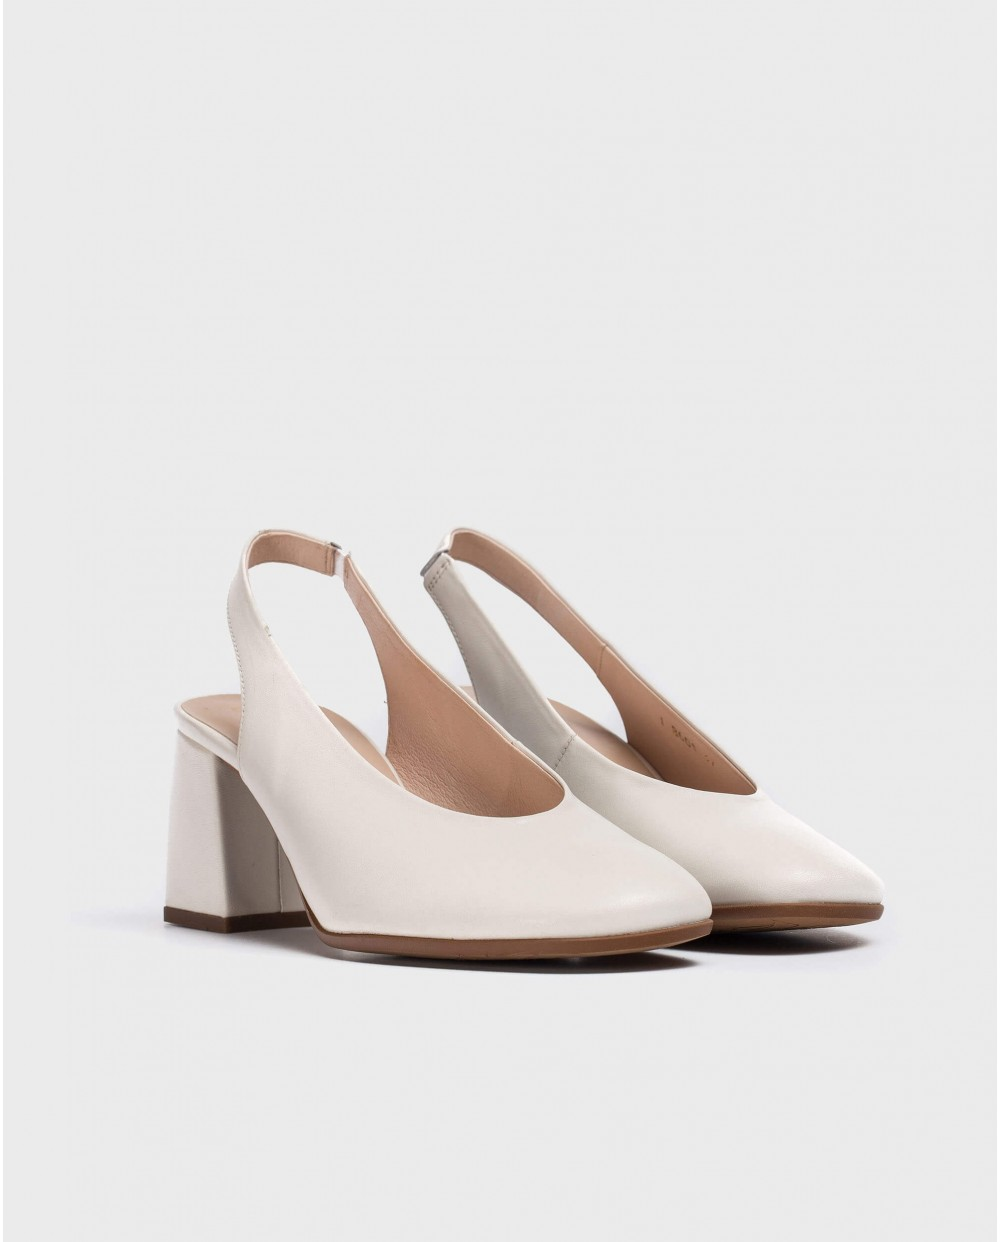 Wonders-Heels-Backless leather shoe